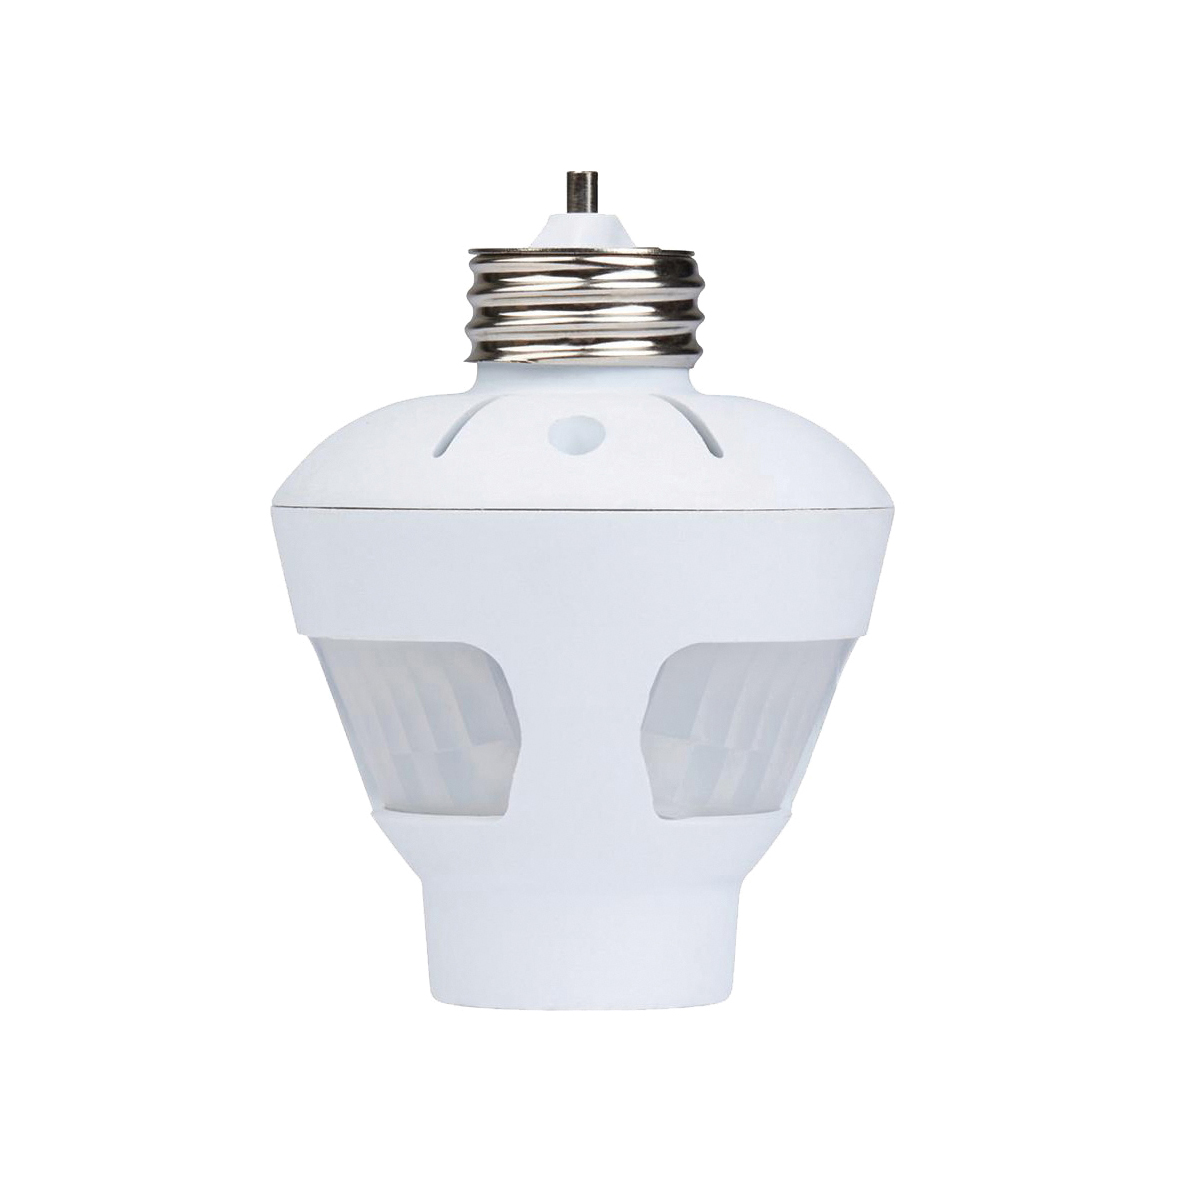 Picture of Westek MLC169BC Light Control, 120 V, 75 W, CFL, Incandescent, LED Lamp, White